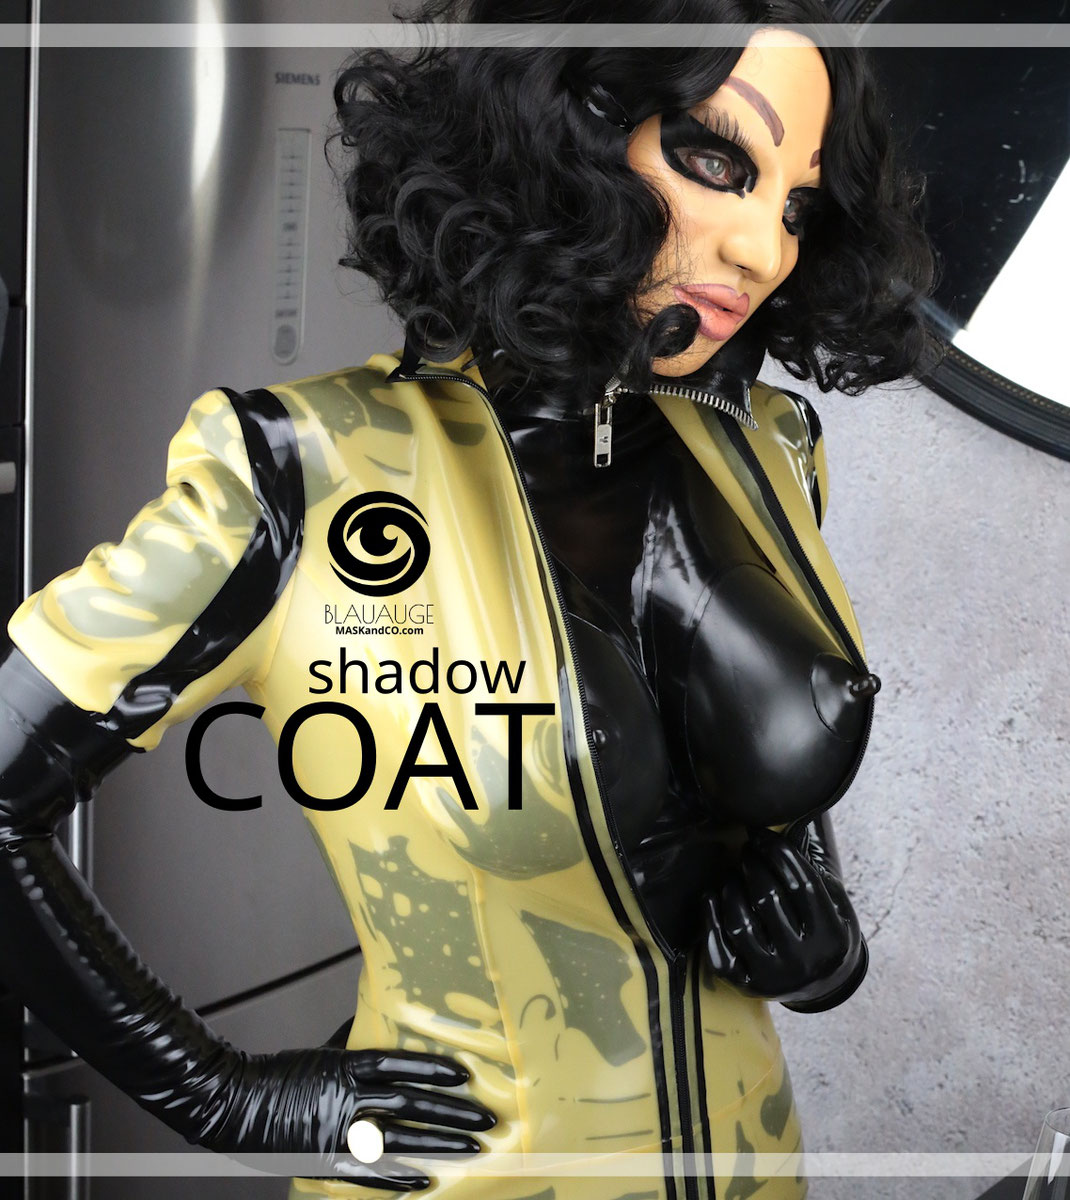 latexjacke latex jacket, female maske, latexhood, latexmaske, doll, rubberdoll, fetishmodel, latexfetish, heavyrubber,